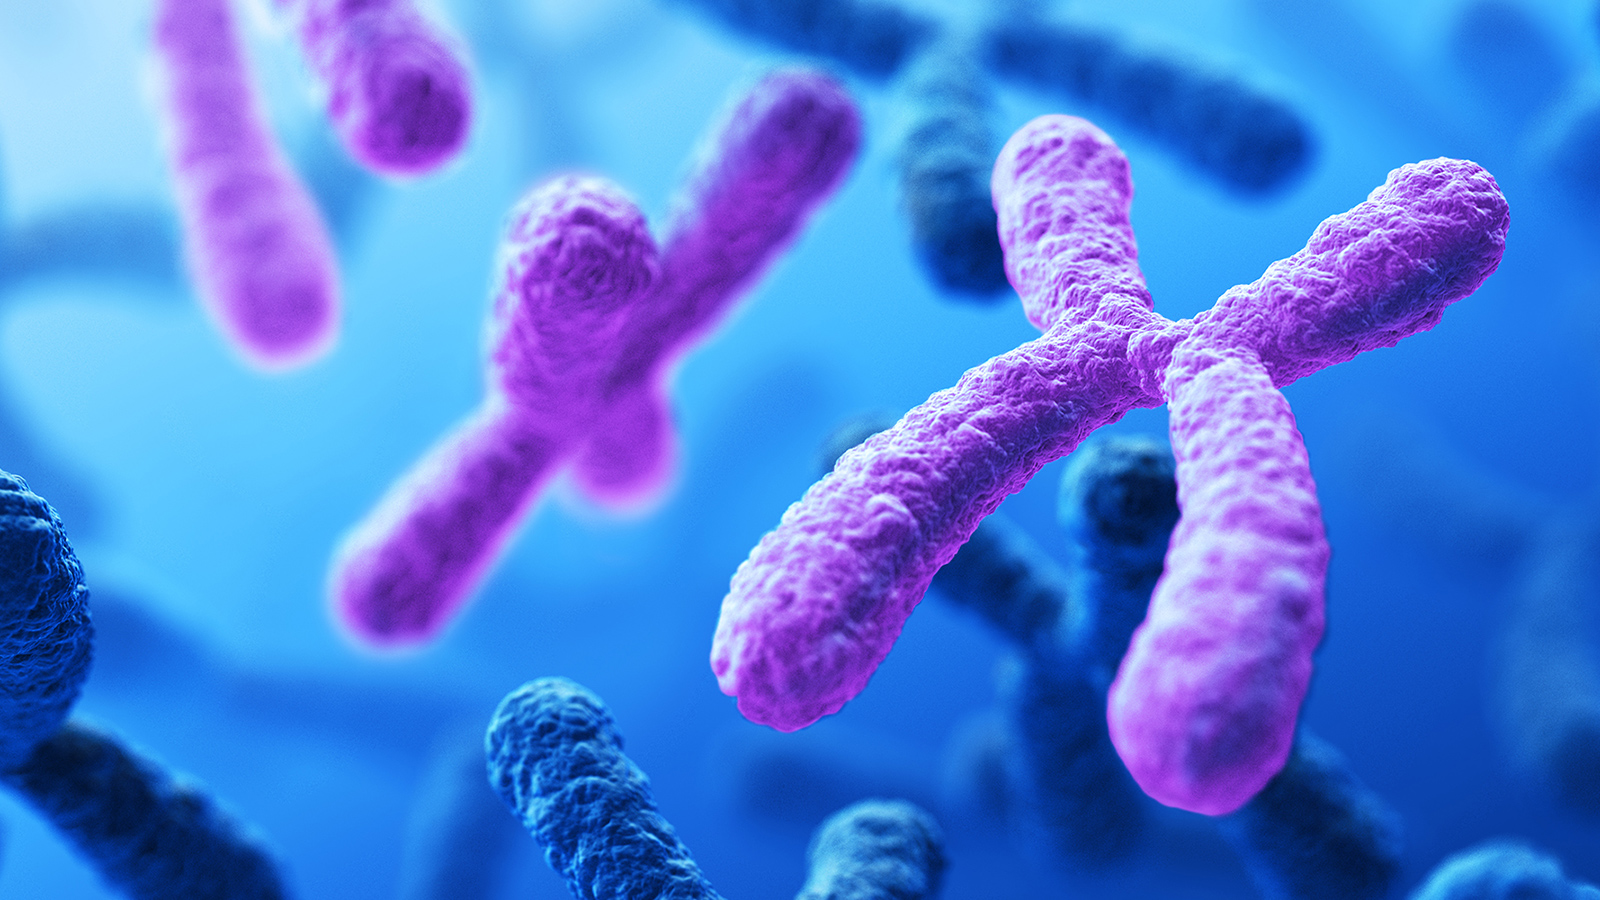 Chromosomes, the building blocks of DNA.